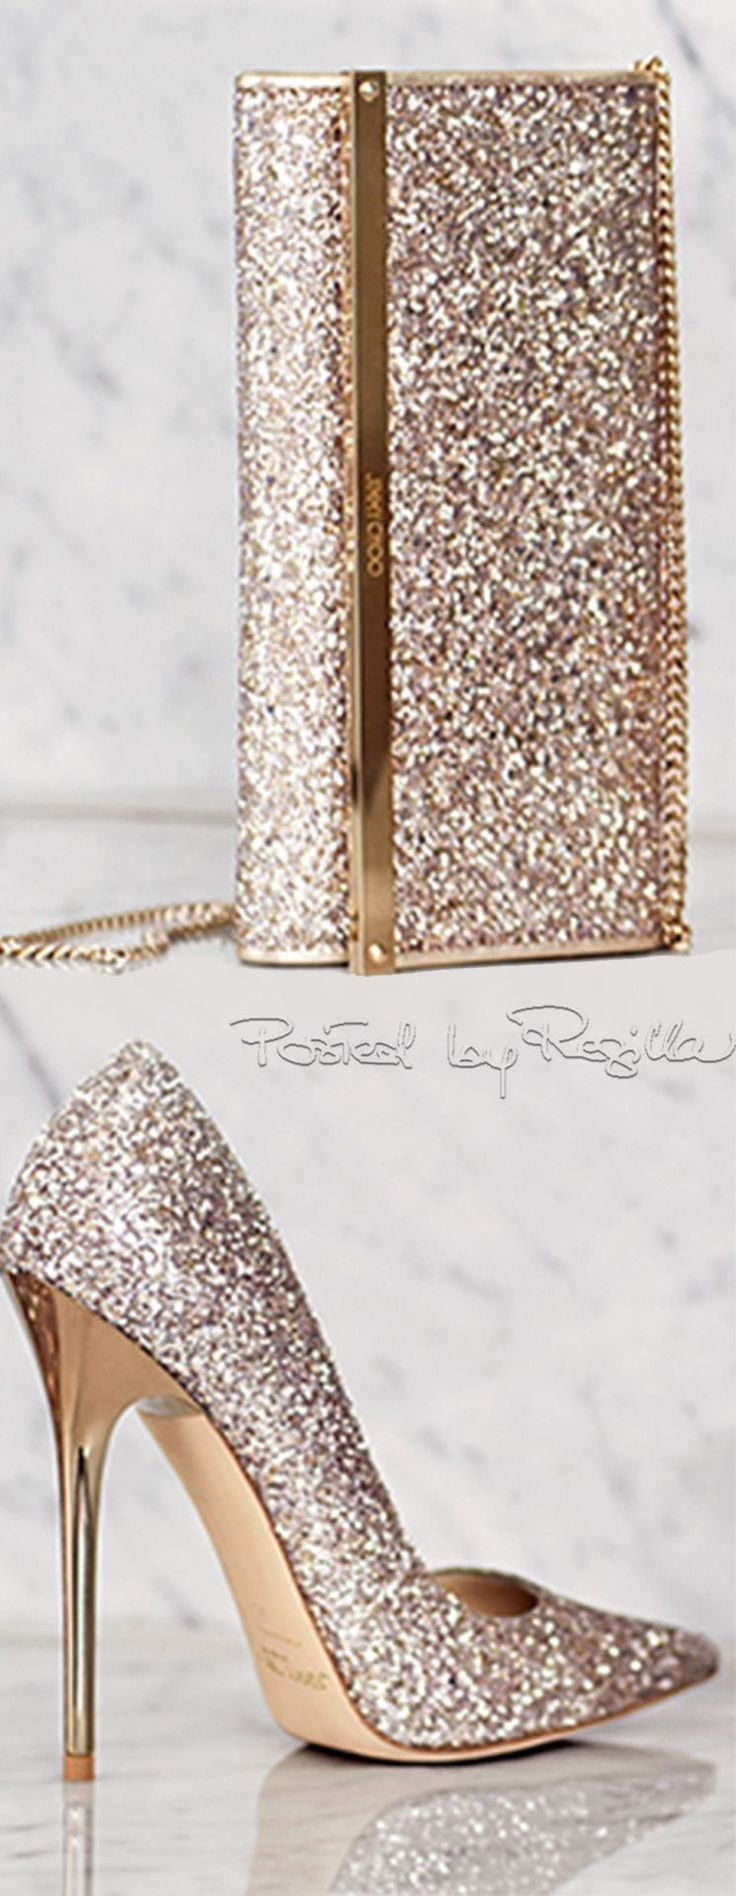 Regilla ⚜ Jimmy Choo   You can see the Rest of the Outfit and my Comments on…